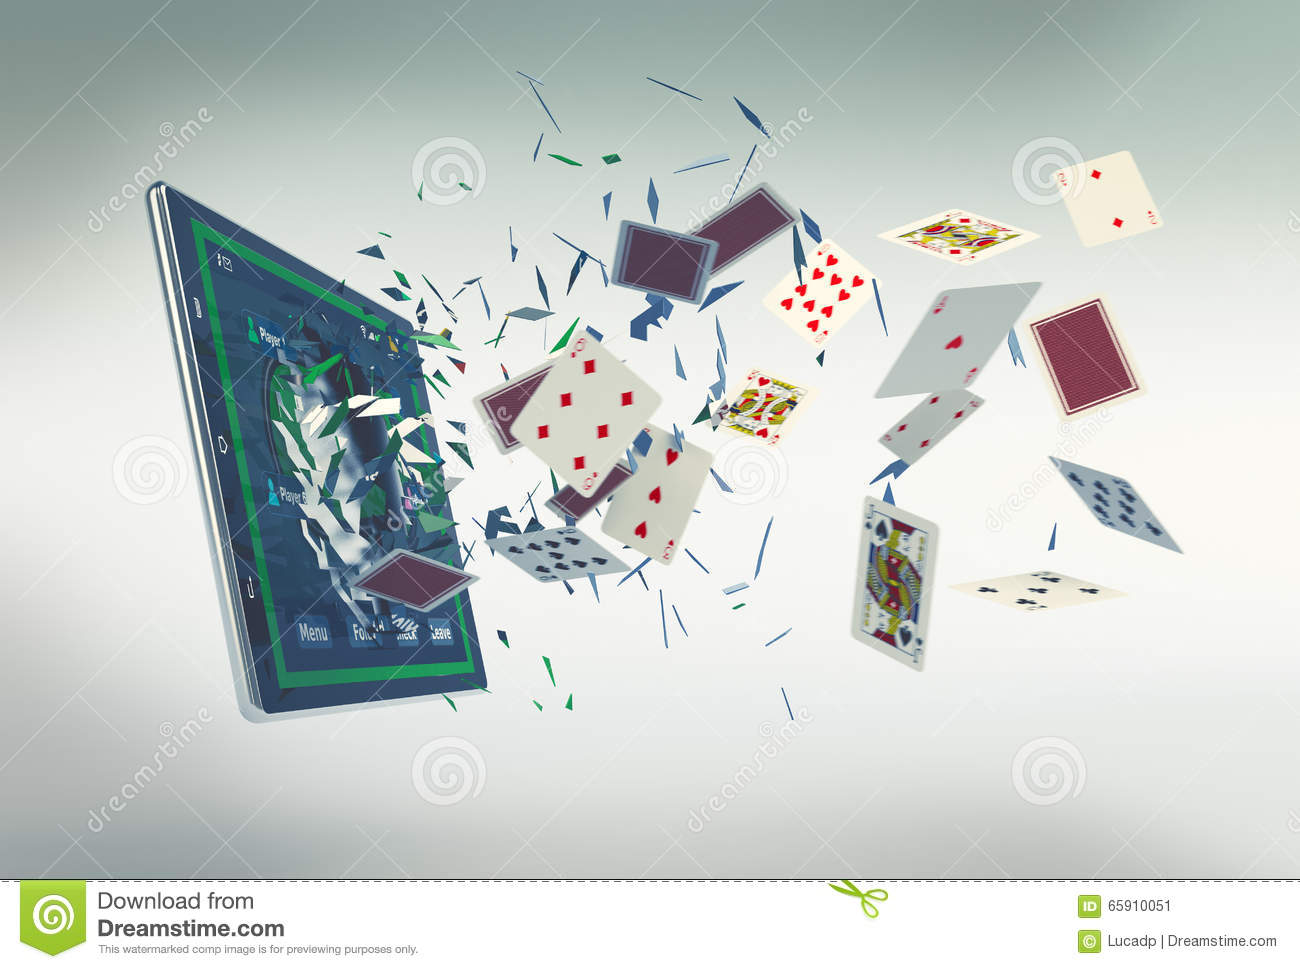 poker-online-tablet-pc-app-lot-cards-coming-out-breaking-glass-concept-gaming-d-render-65910051.jpg